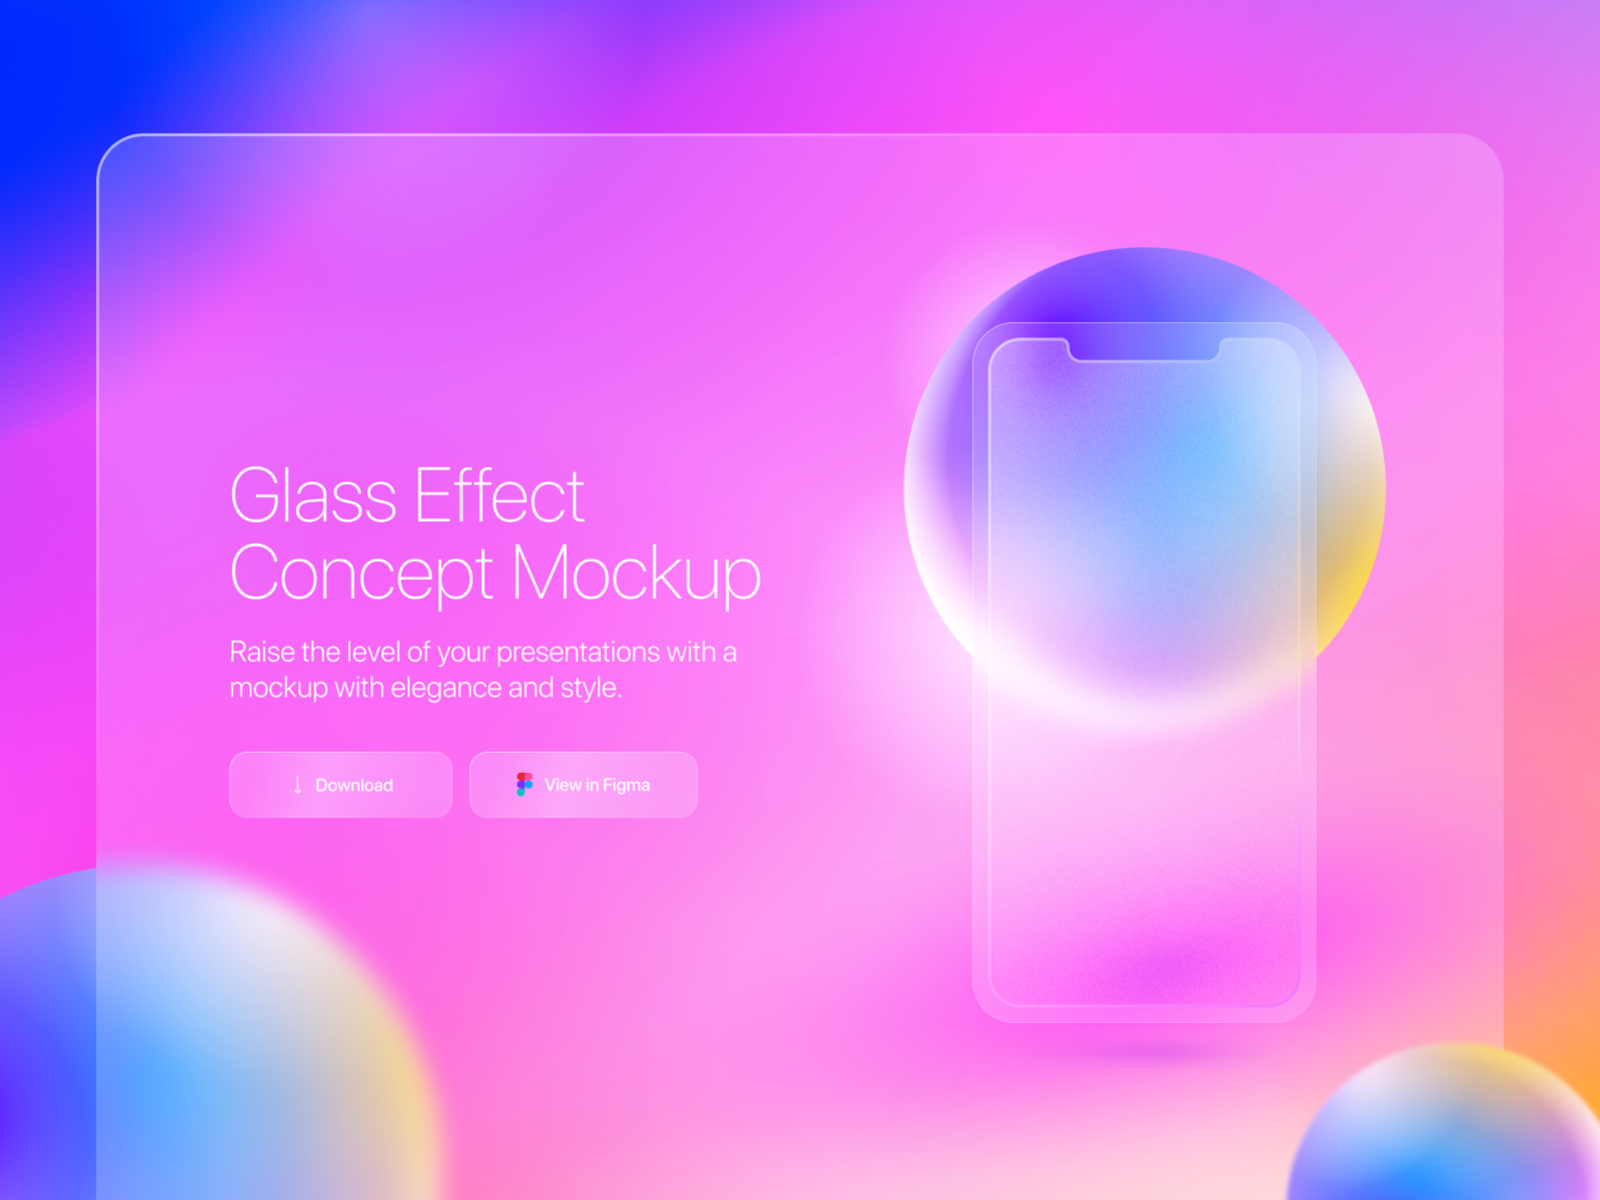 Glass Effect Concept Mockup By Umpontoseis On Dribbble In 2021 App Design Layout Graphic Design Logo Mood Board Design